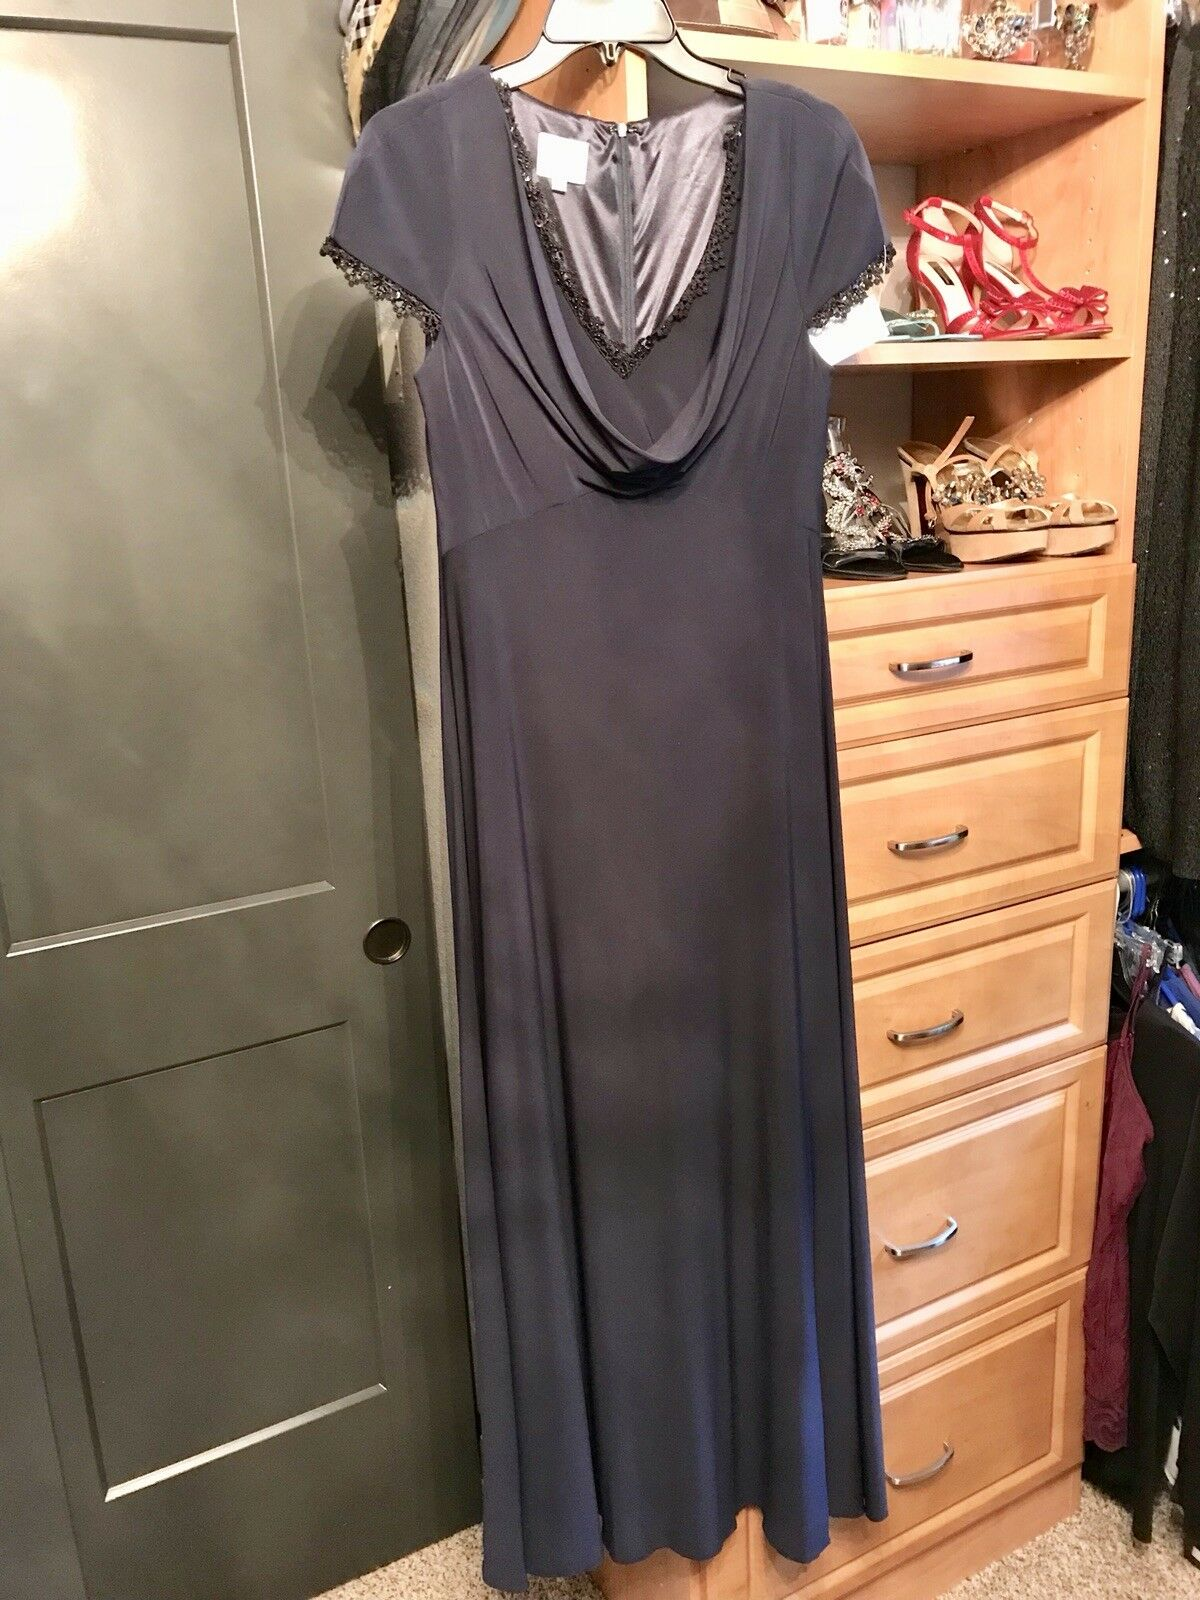 189 NWT New Patra Womens Navy bluee Size 12 Jersey Evening Gown 63% OFF